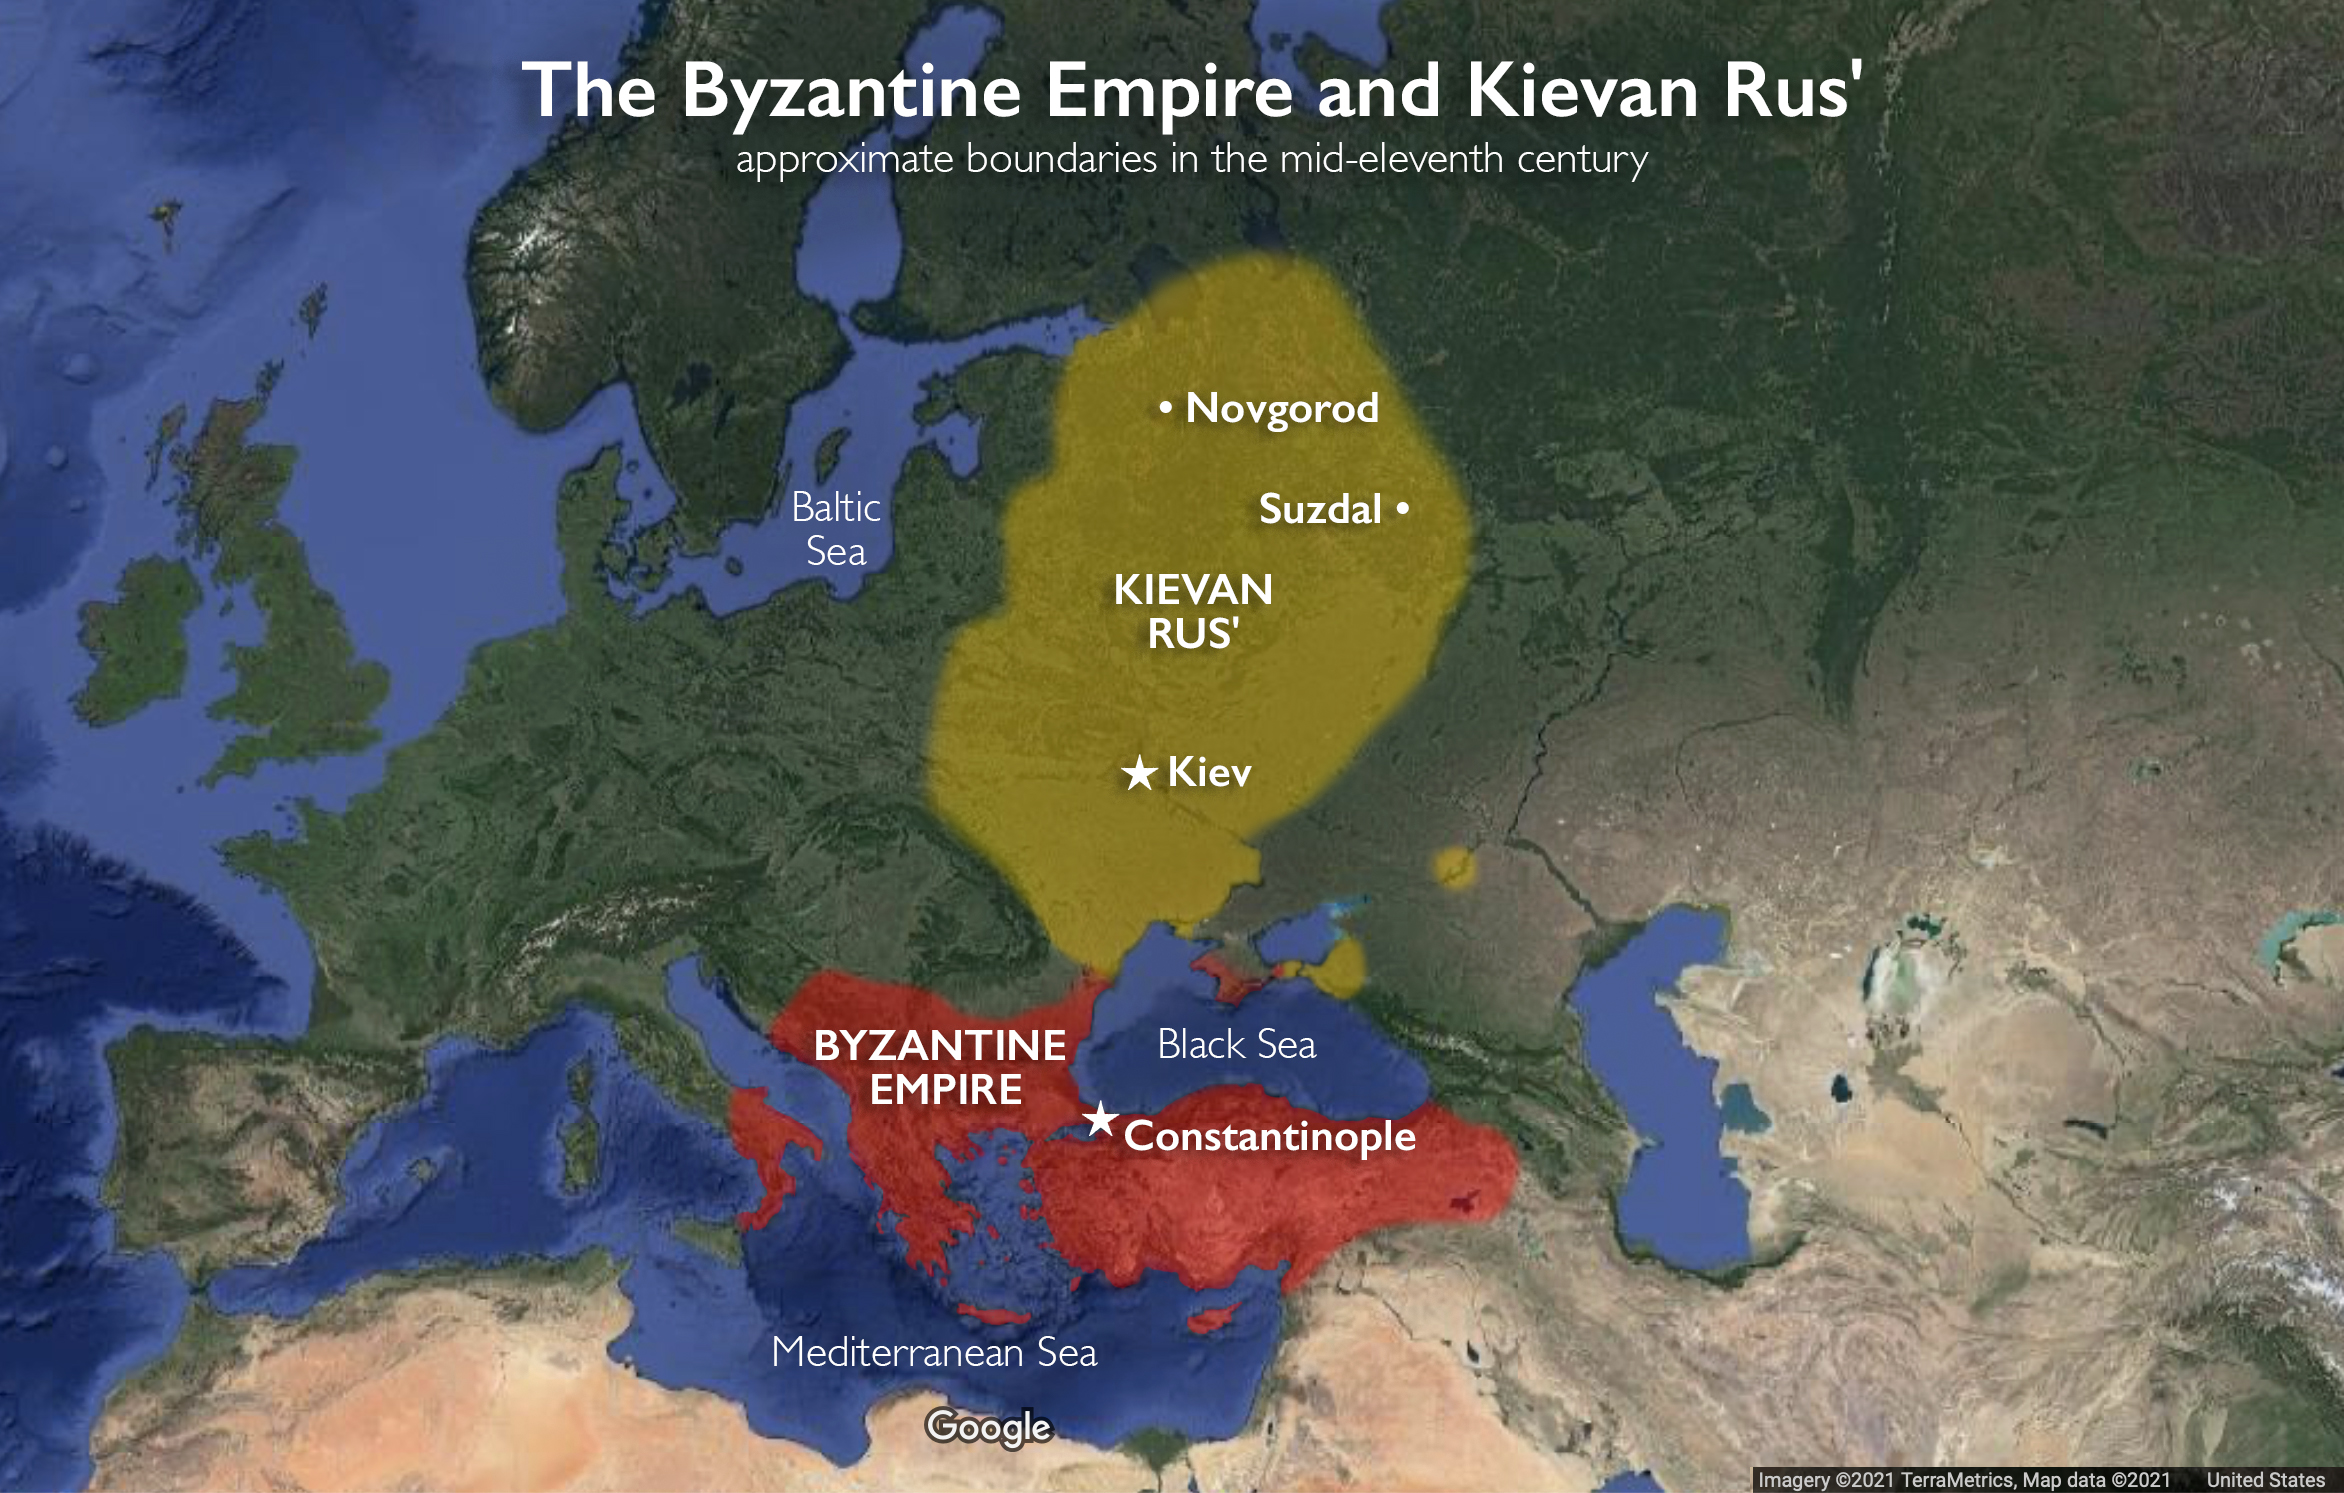 Map of the Byzantine Empire and Kievan Rus' (underlying map © Google)